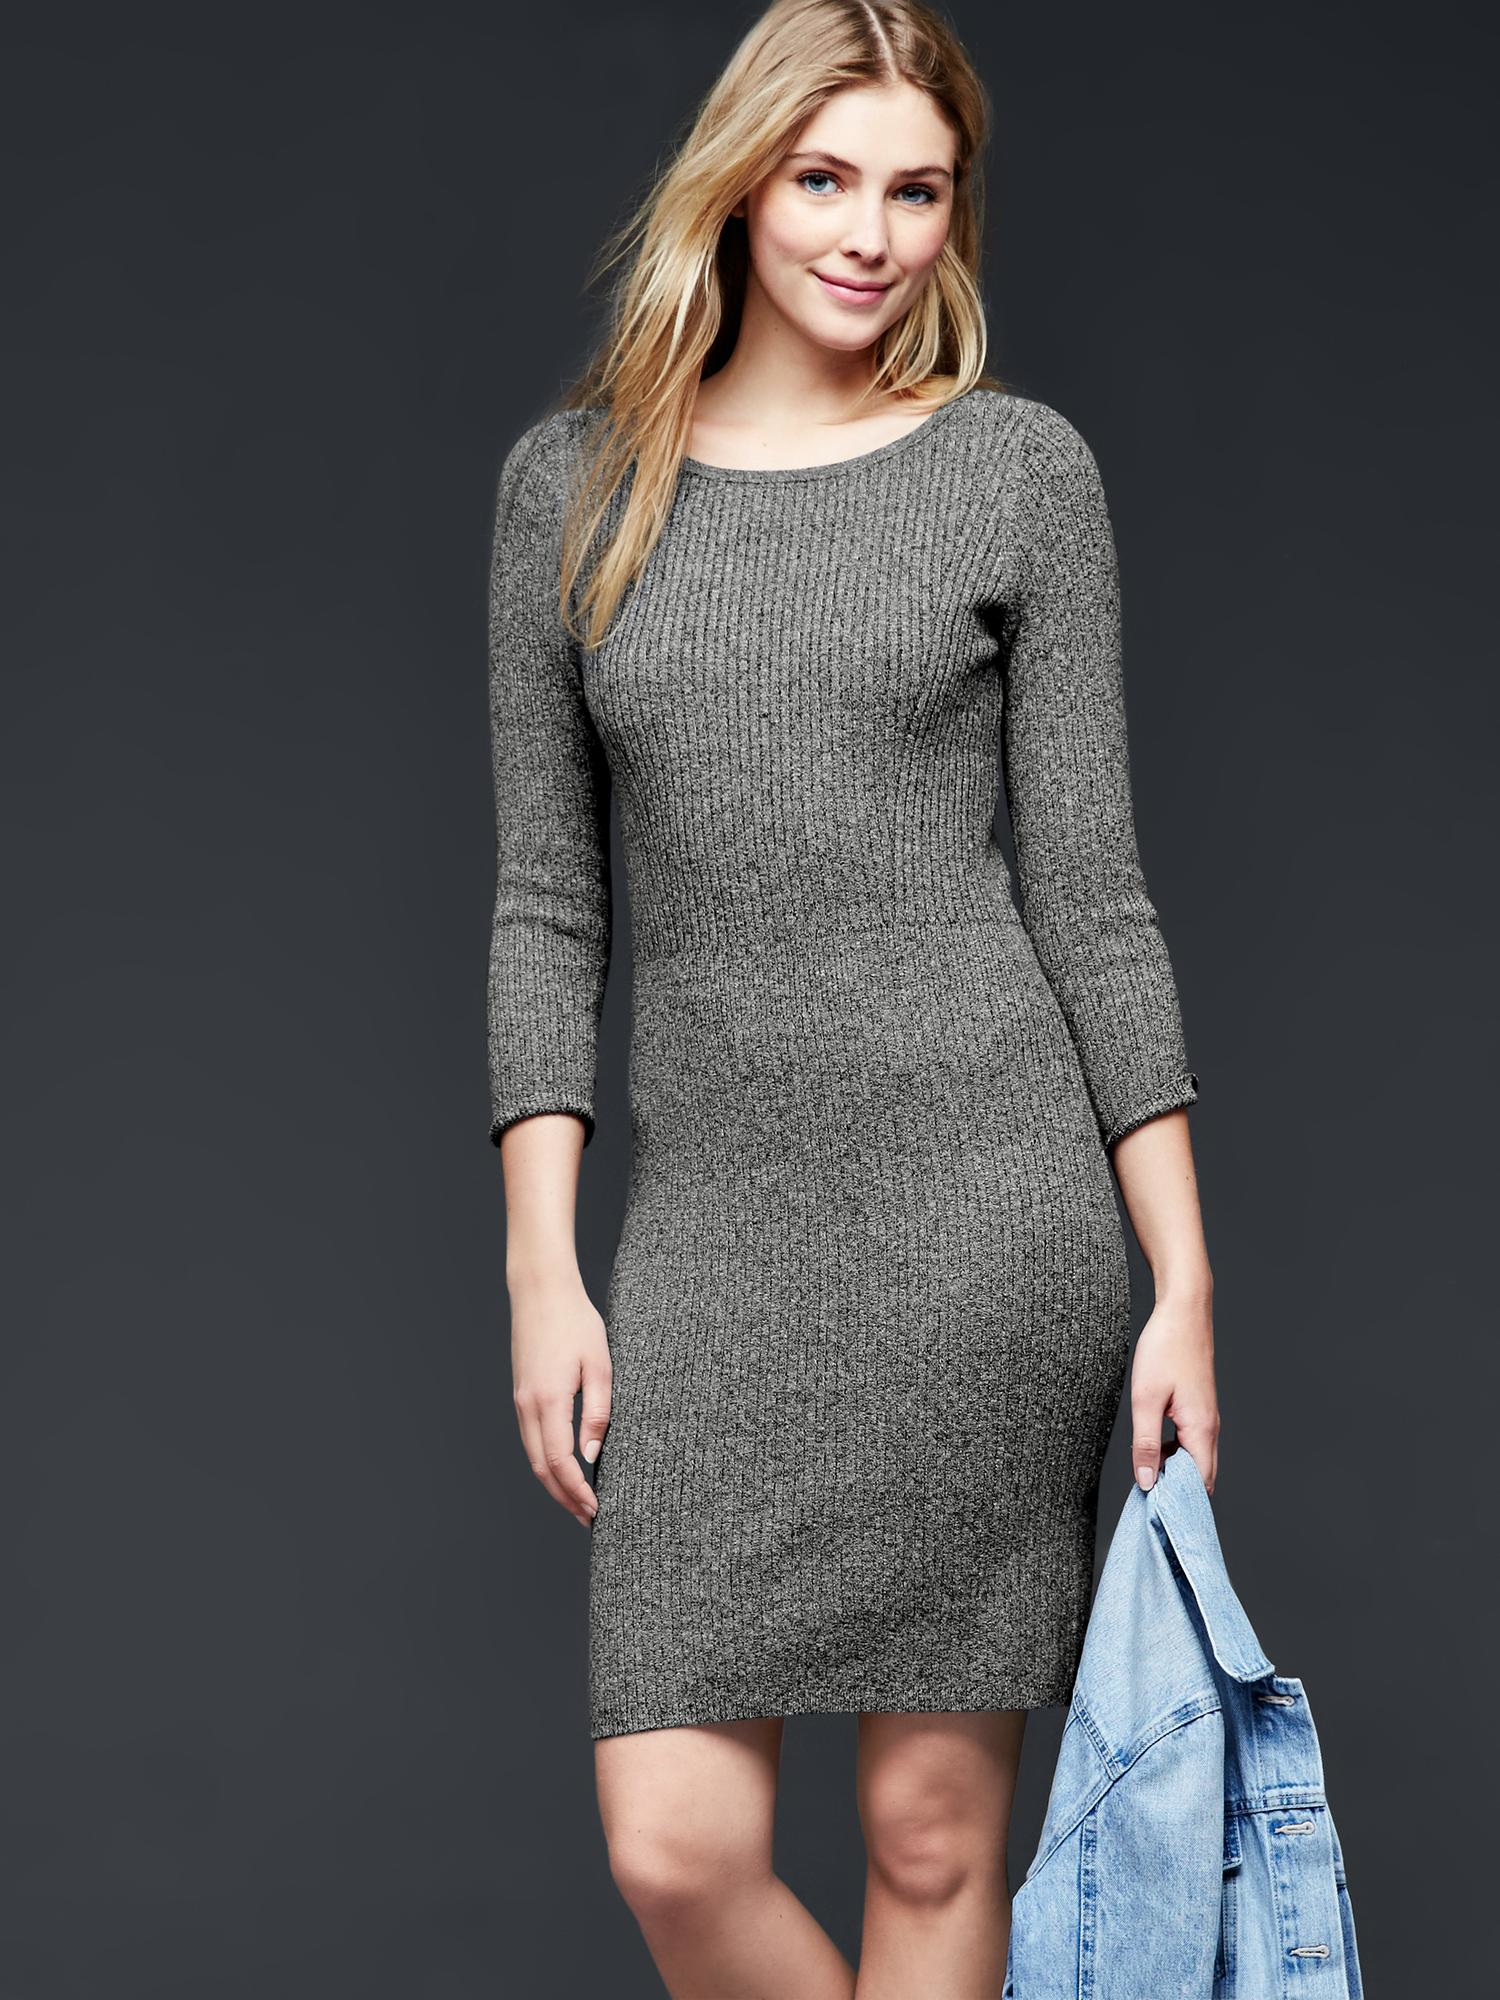 Gap is your source with a fashionable long sleeve maternity dresses collection that is always quality made. Browse our long sleeve maternity dress selection for colors, prints, and patterns you will love.